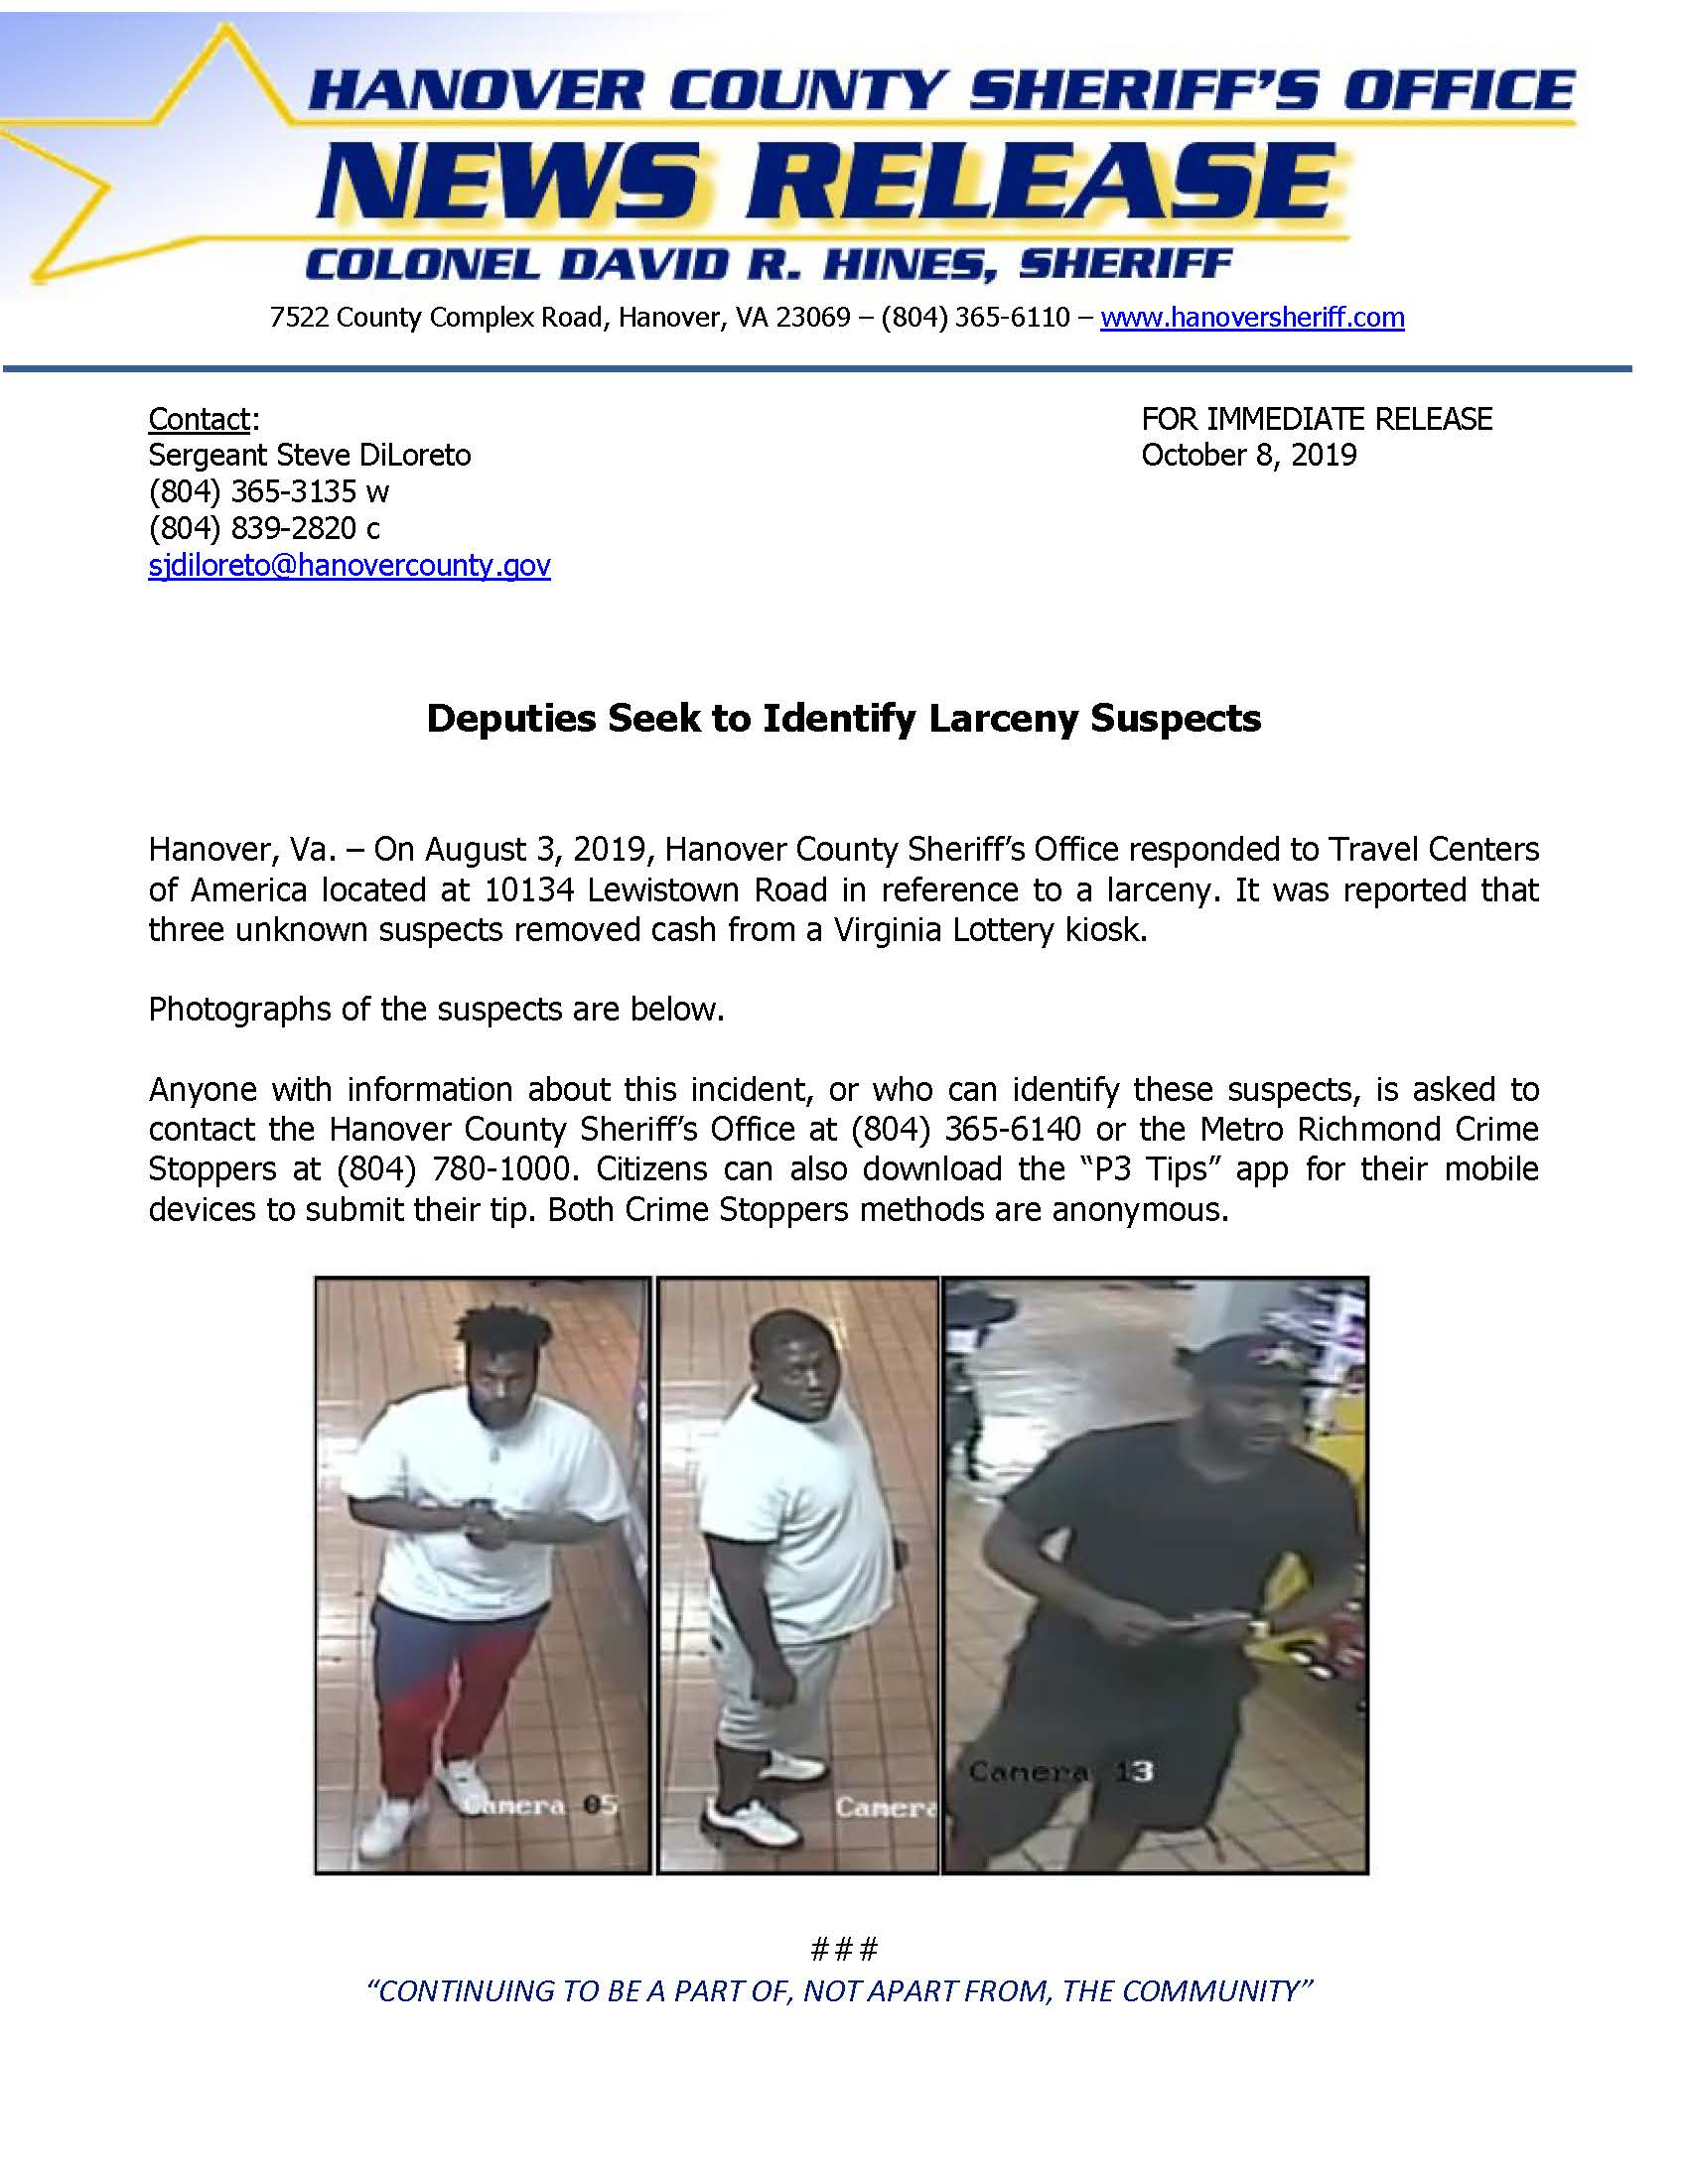 HCSO - Deputies Seek to Identify Larceny Suspect- August 28 2019 (002)